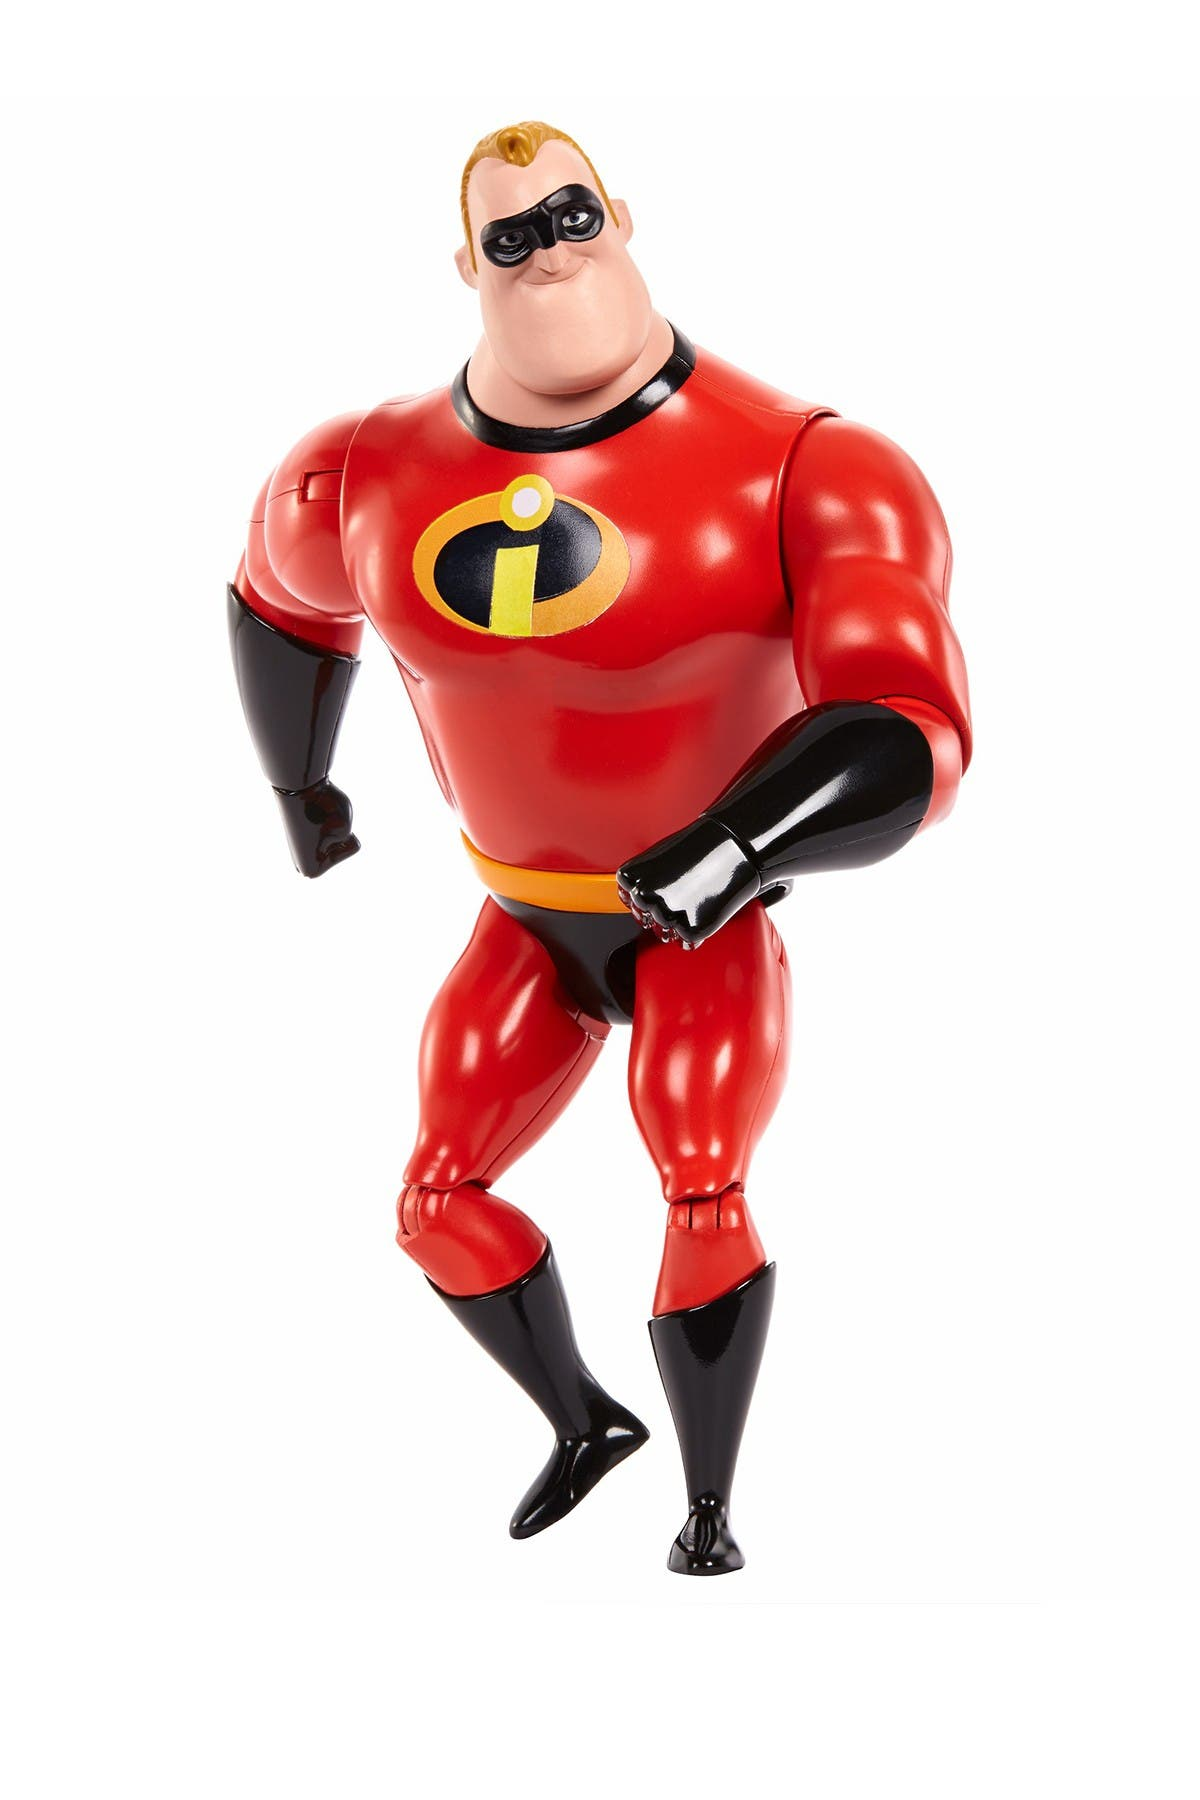 Image of Mattel Disney Pixar The Incredibles Mr. Incredible Figurine